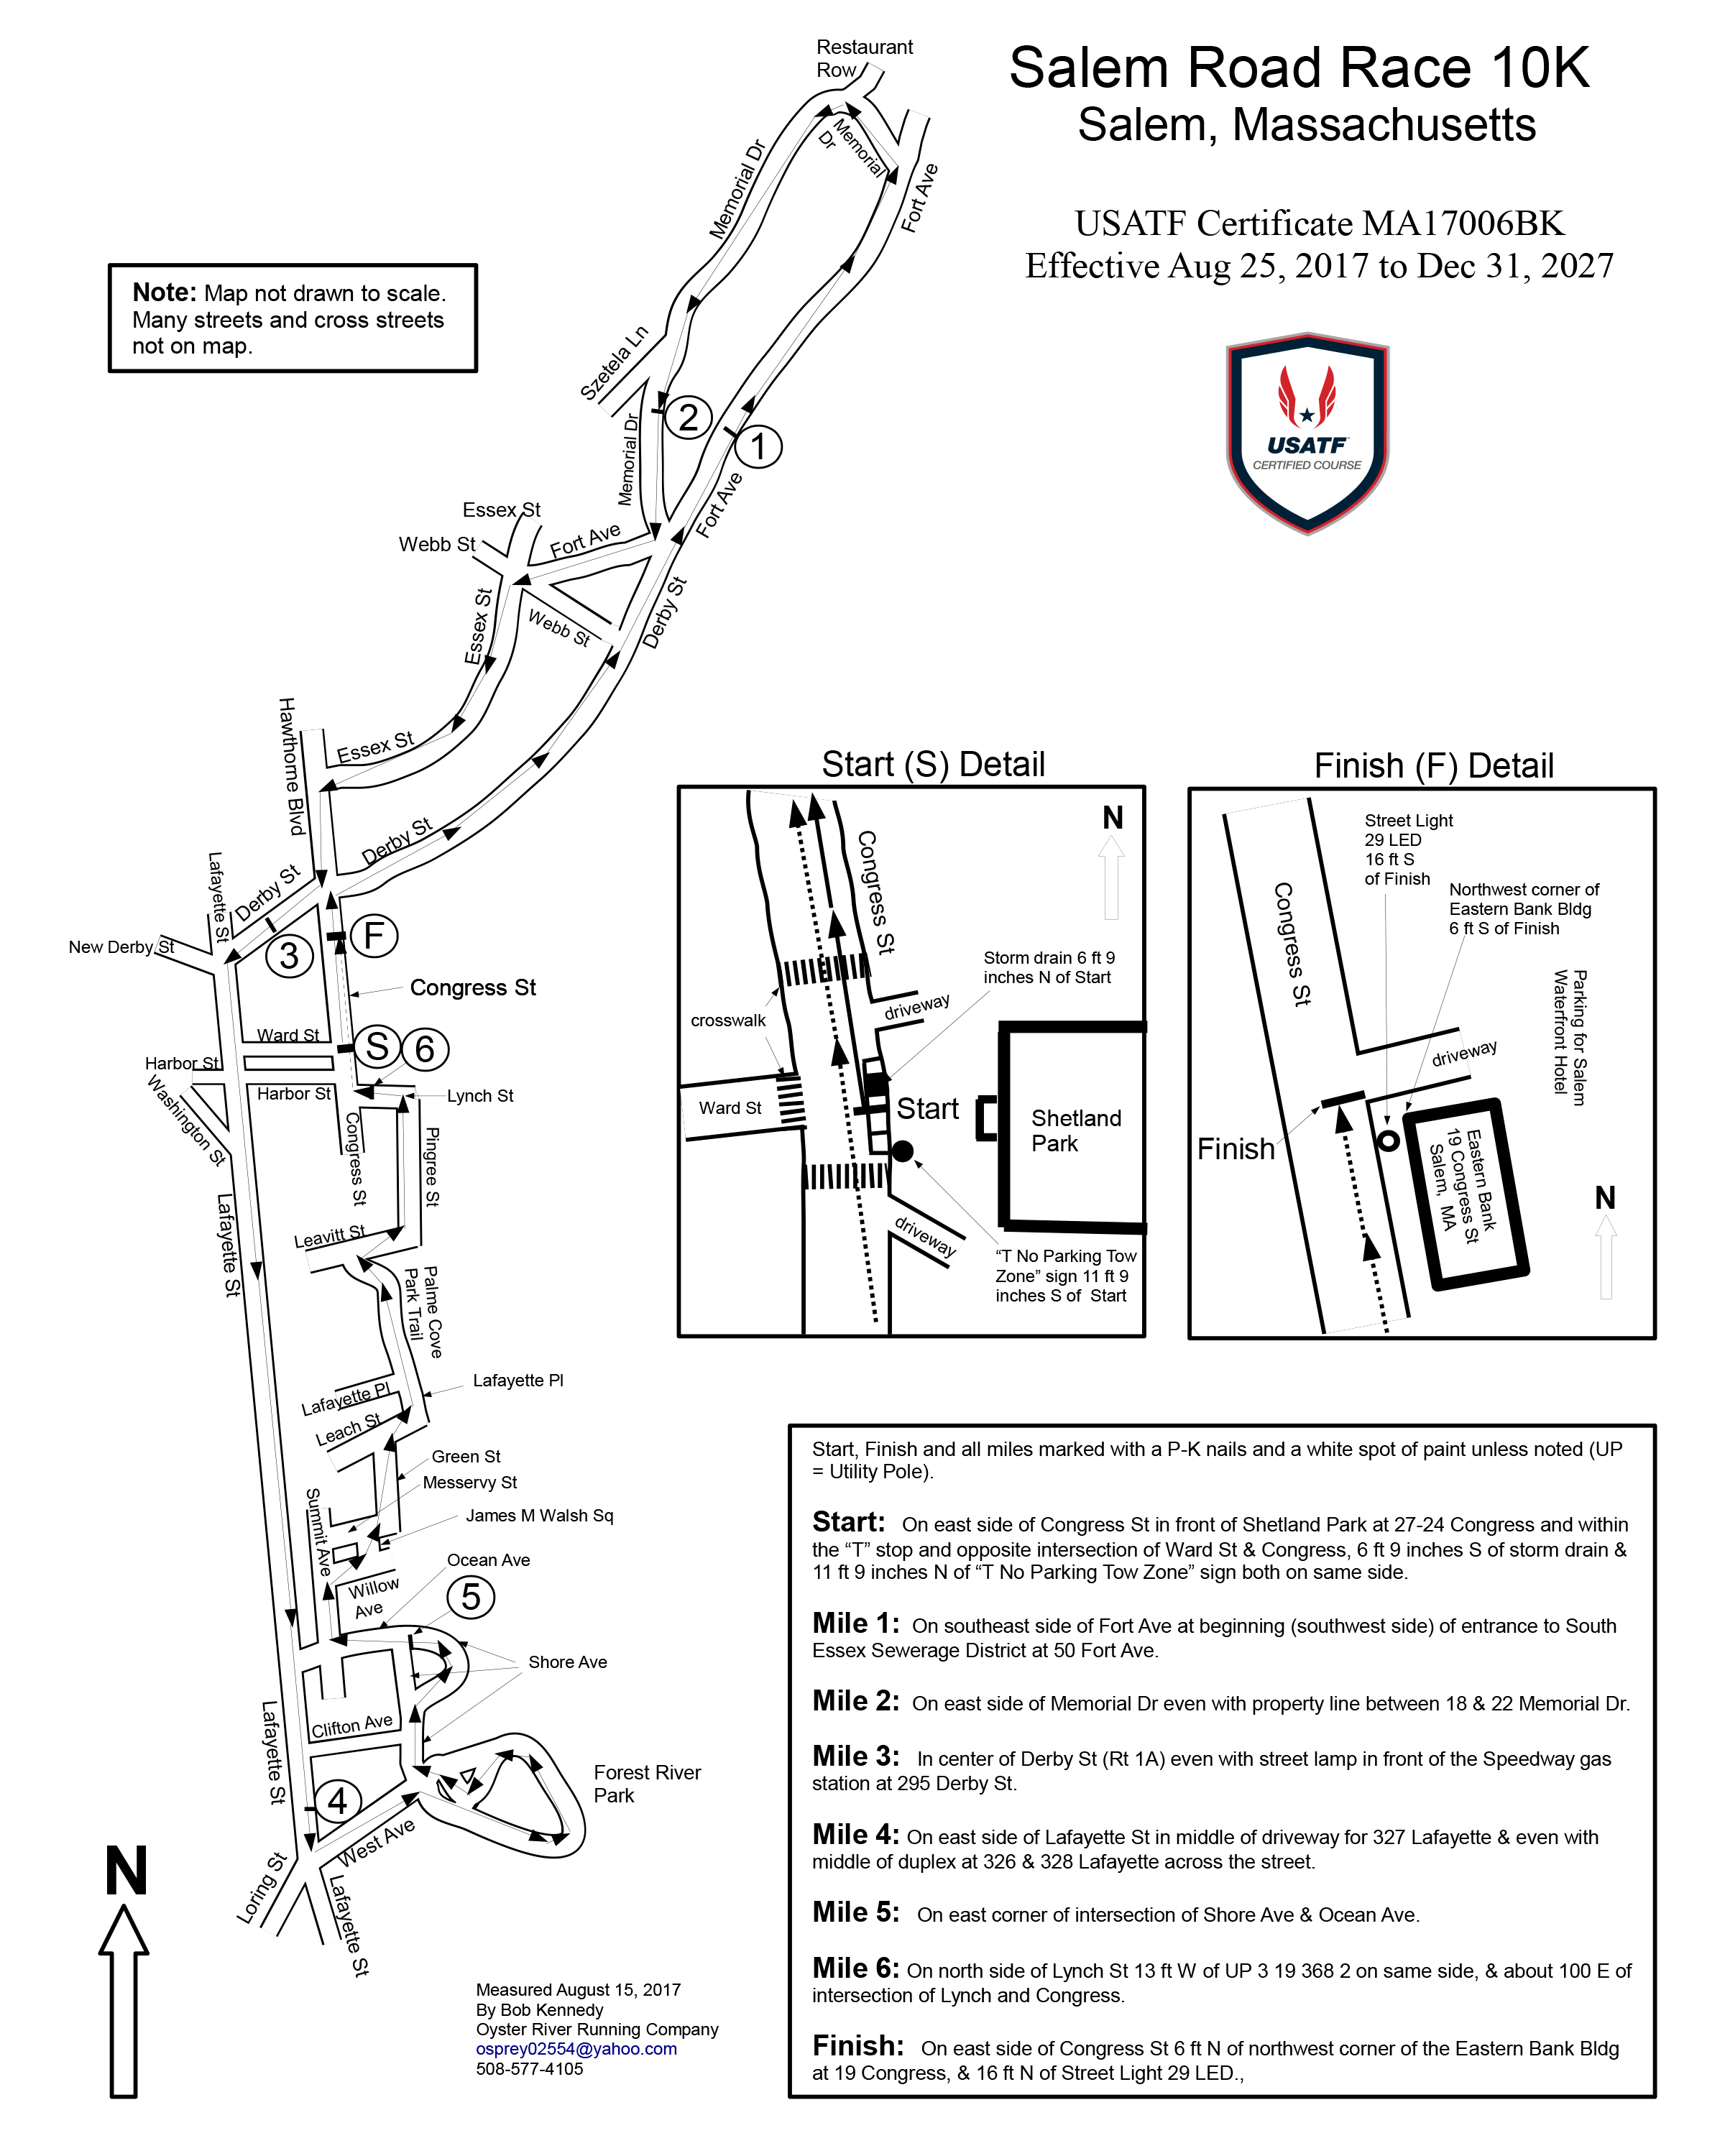 Salem Road Race USATF Course Map.jpg